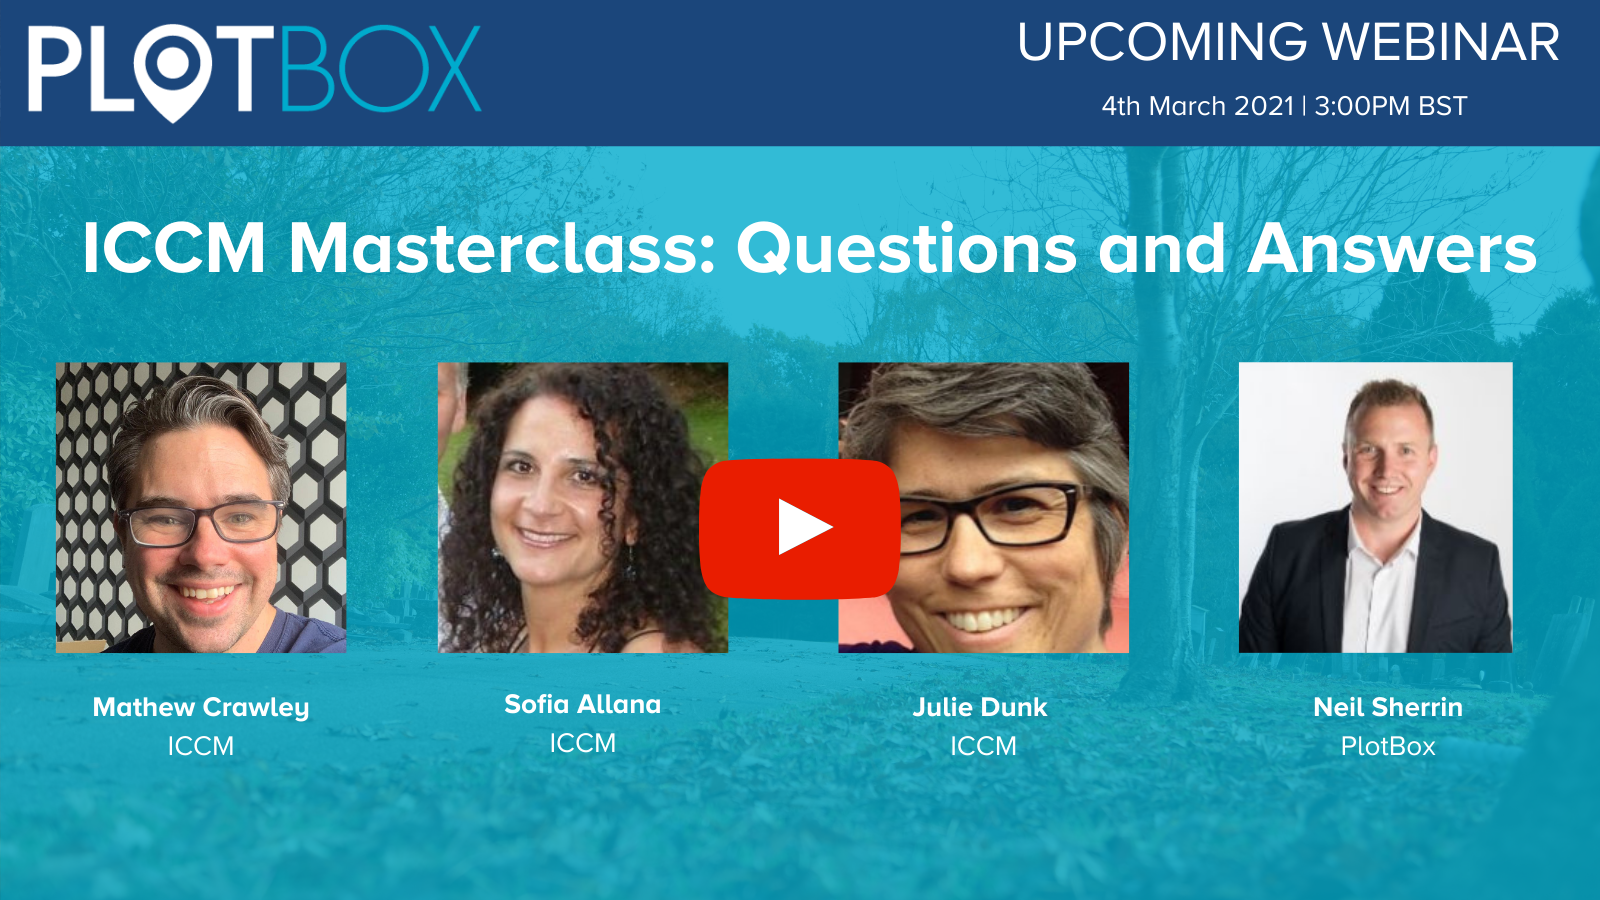 4th March 2021 -  ICCM Masterclass: Questions and Answers